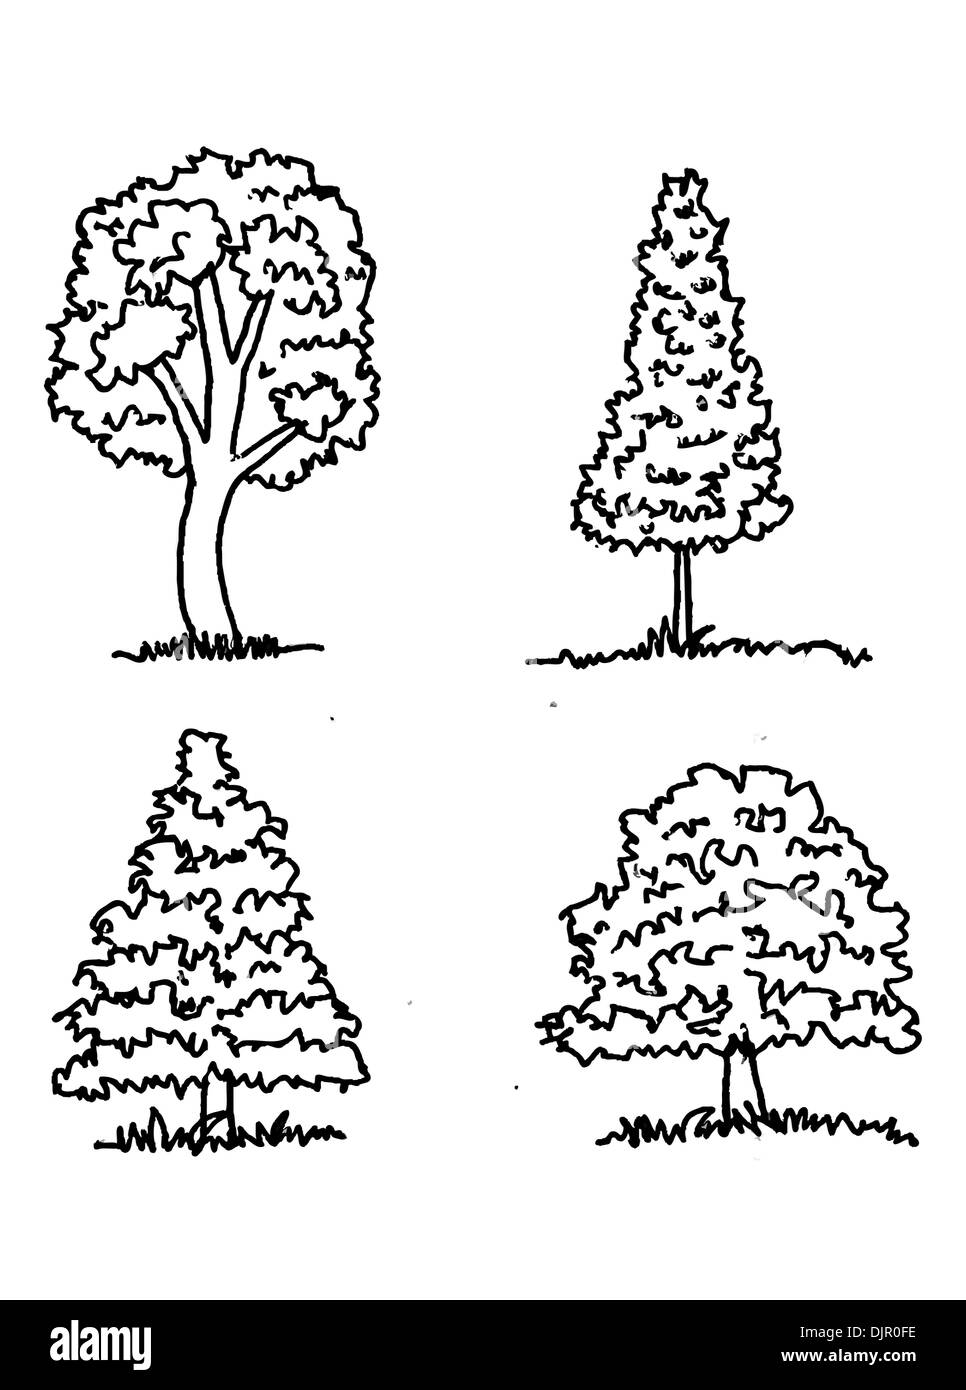 Set of trees with leaves - Stock Image